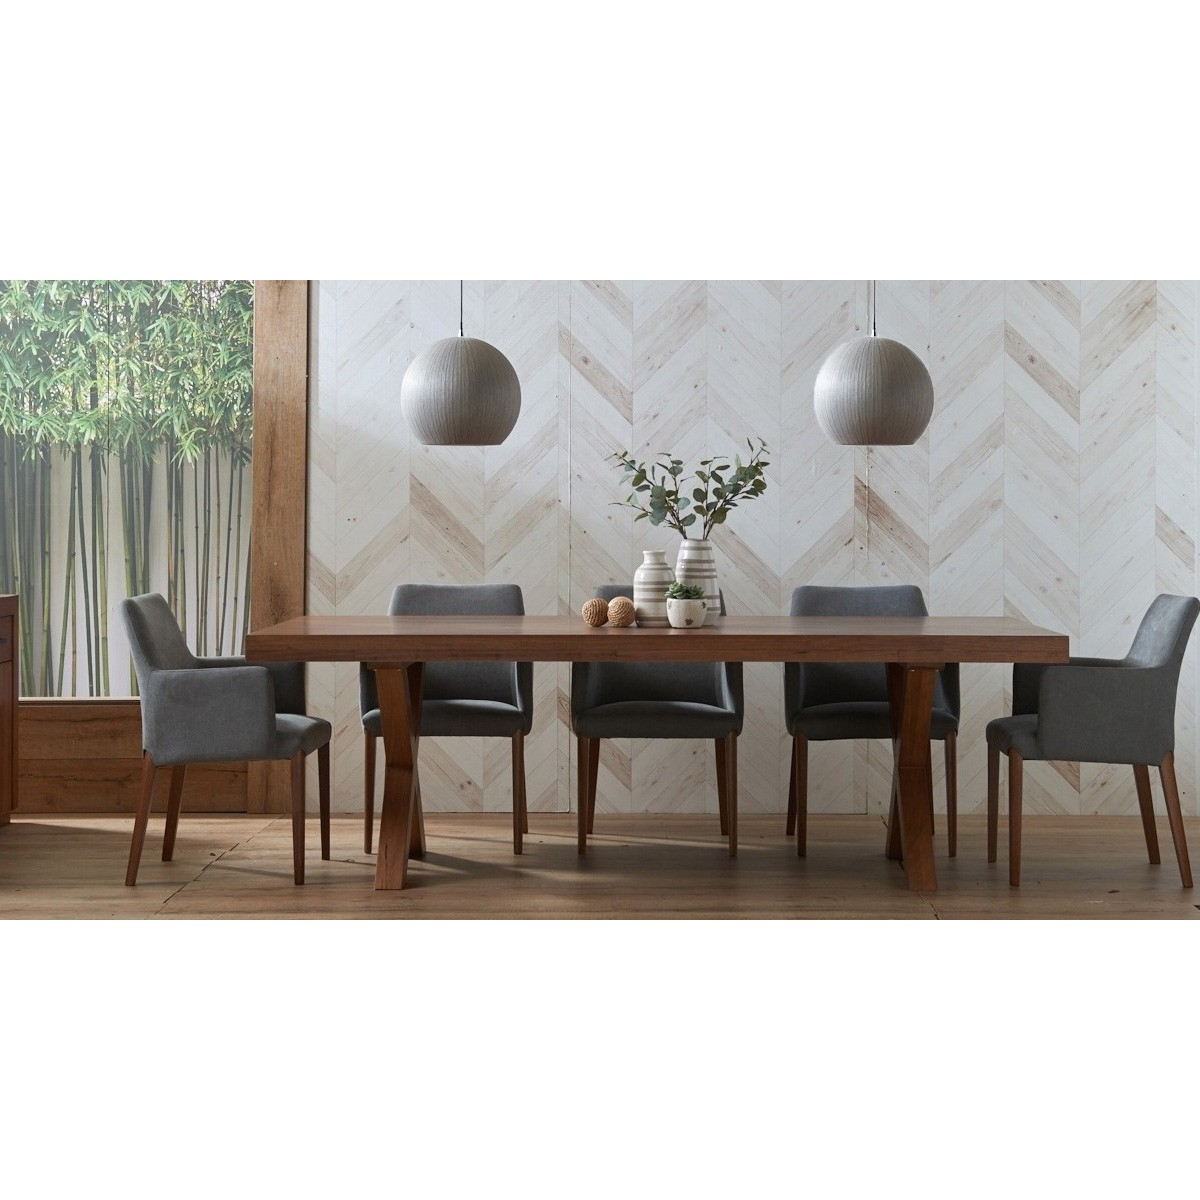 Madalyn 9 Piece Tasmania Oak Timber Dining Table Set, 240cm